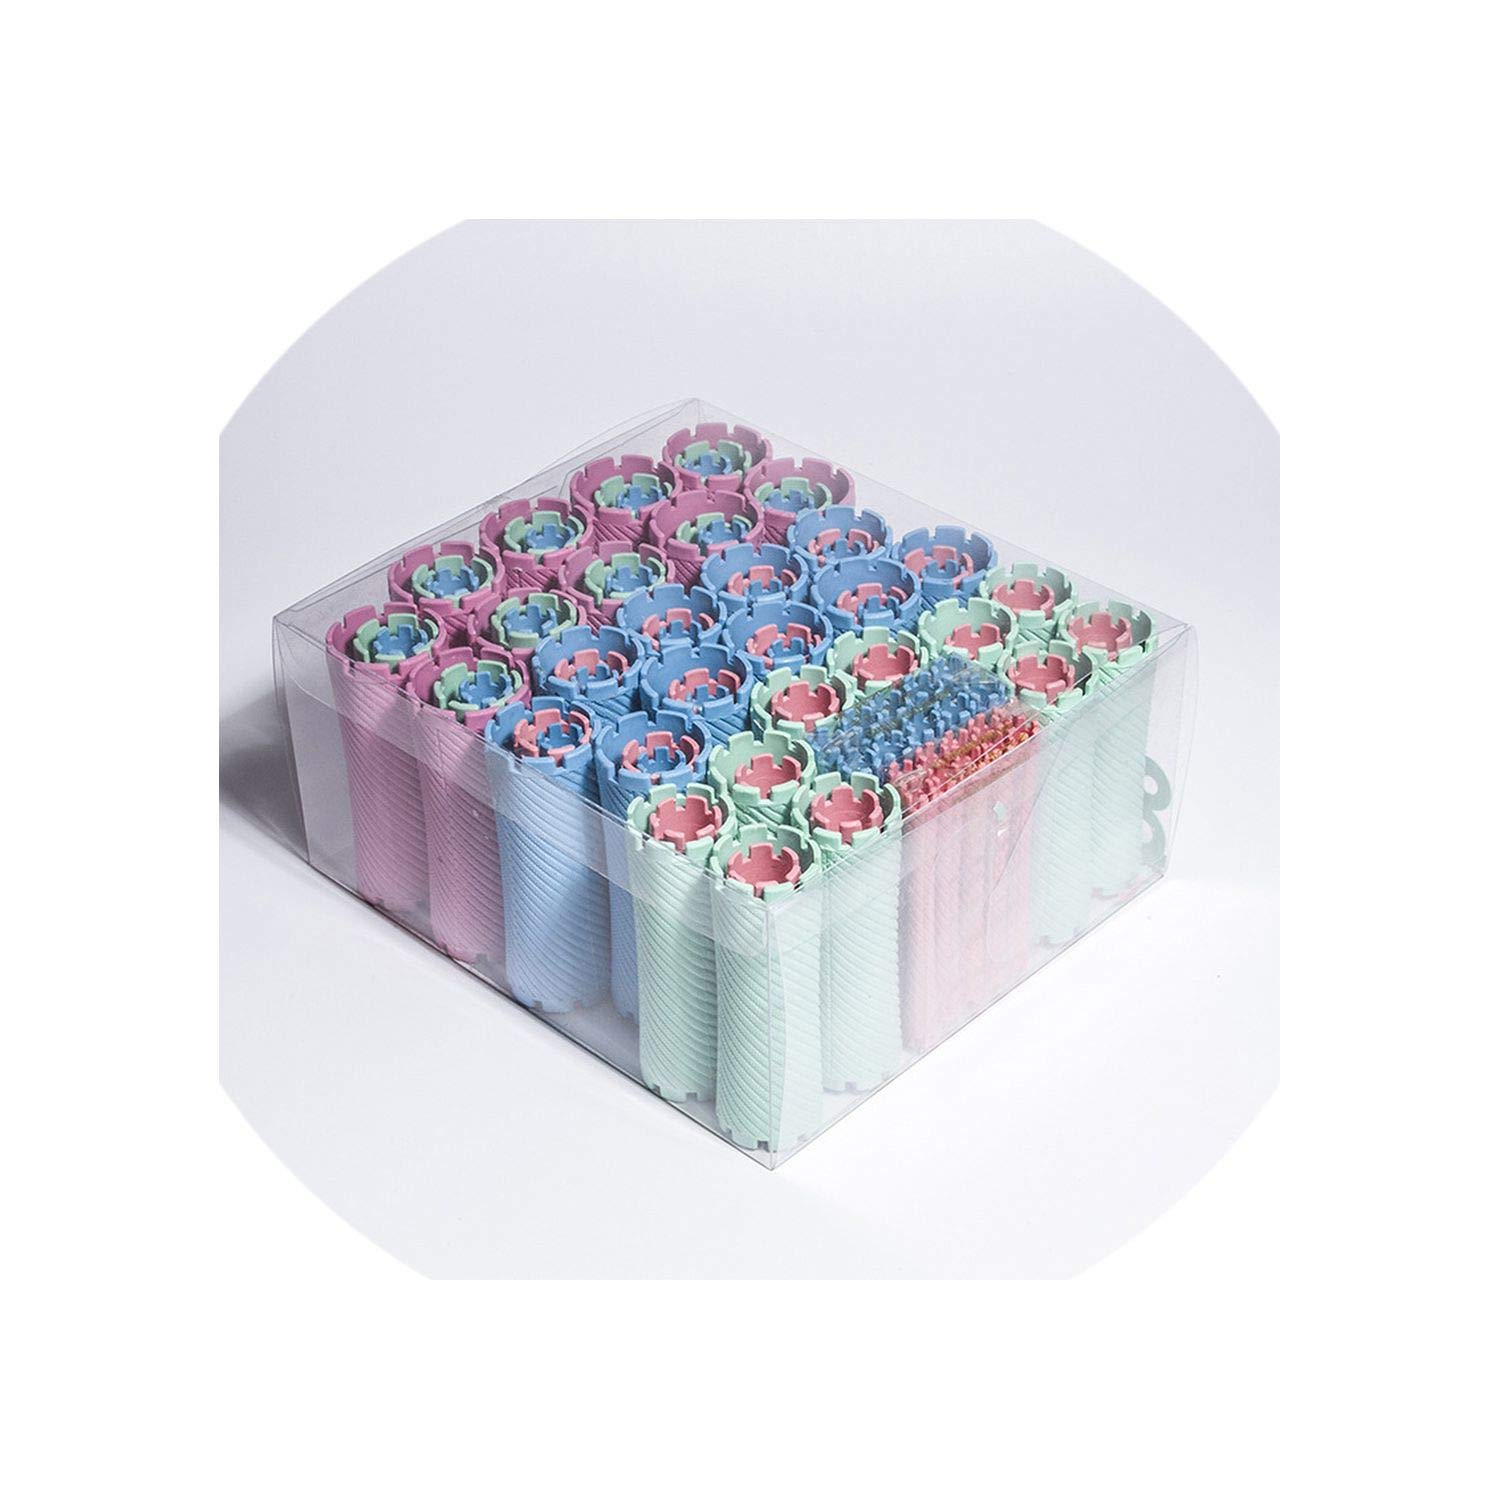 100pcs/set 10 Sizes Hair Perm Rods Kit Cold Permanent Bar Plasticrs Rollers Set Wave Fluffy Corn Hair Maker Styling UN618 by Min Min Xu-hair-rollers